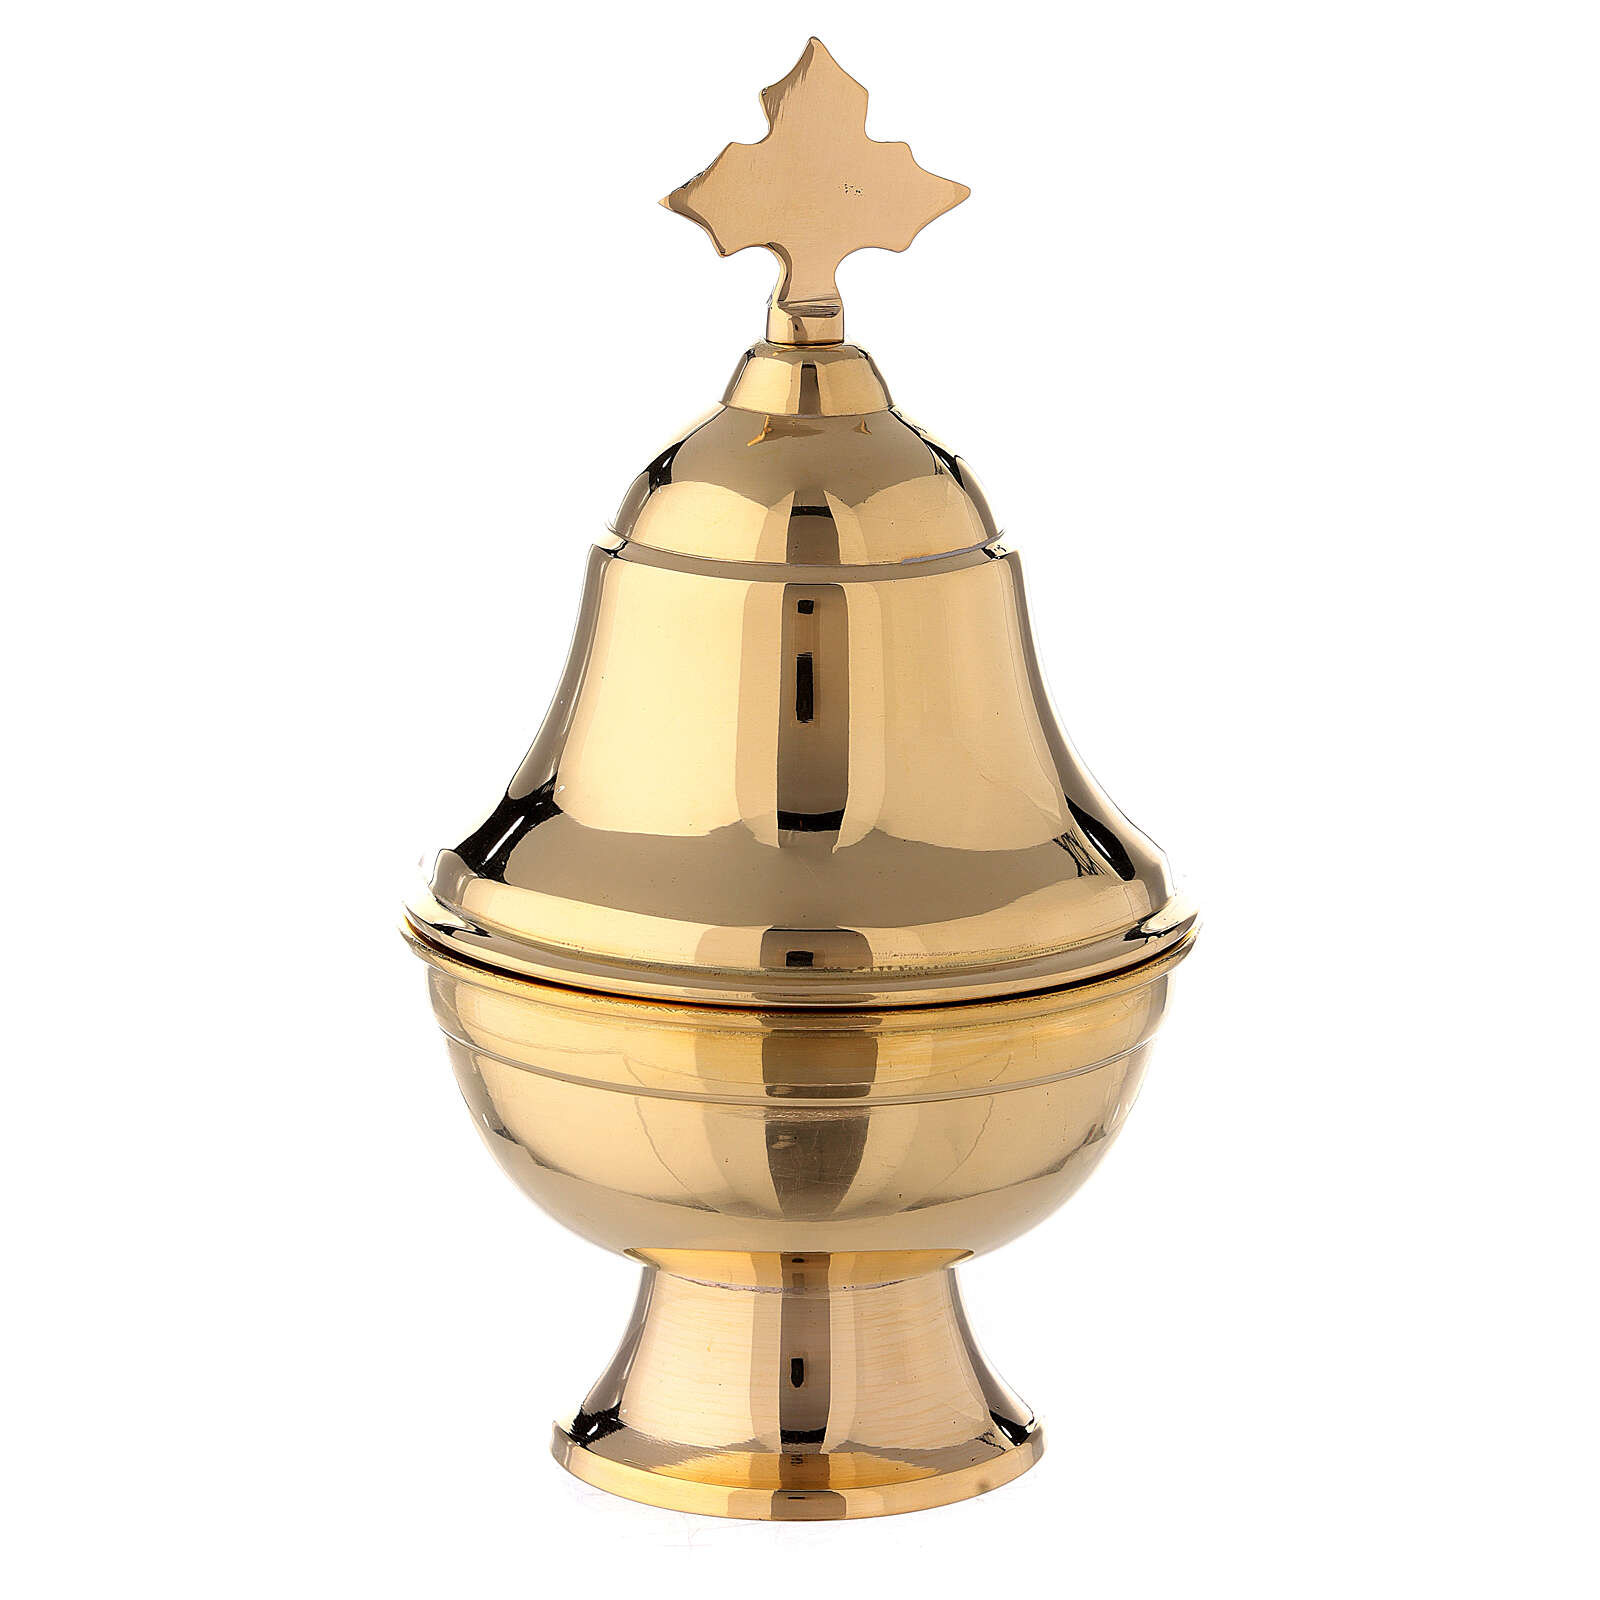 Oval boat of gold plated brass with spoon h 6 in 3